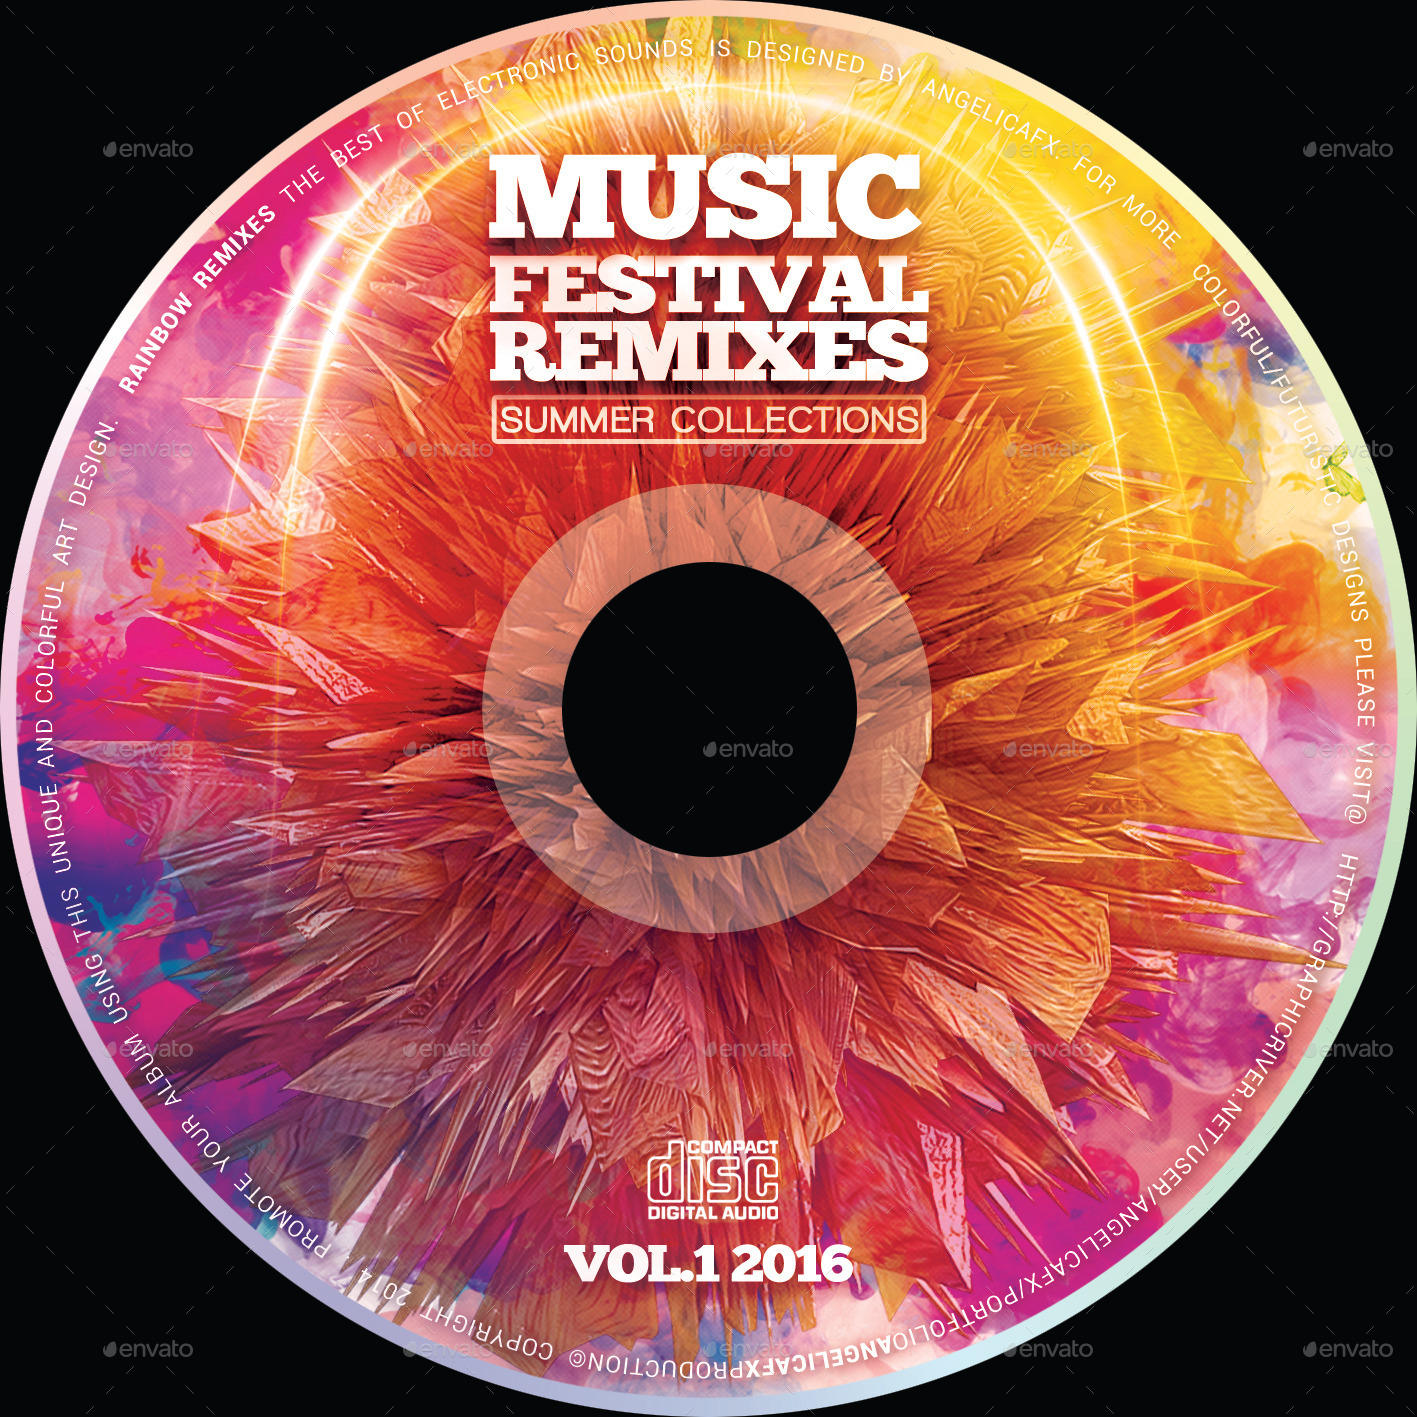 Music Festival Remixes CD Design Template by angelicafx   GraphicRiver